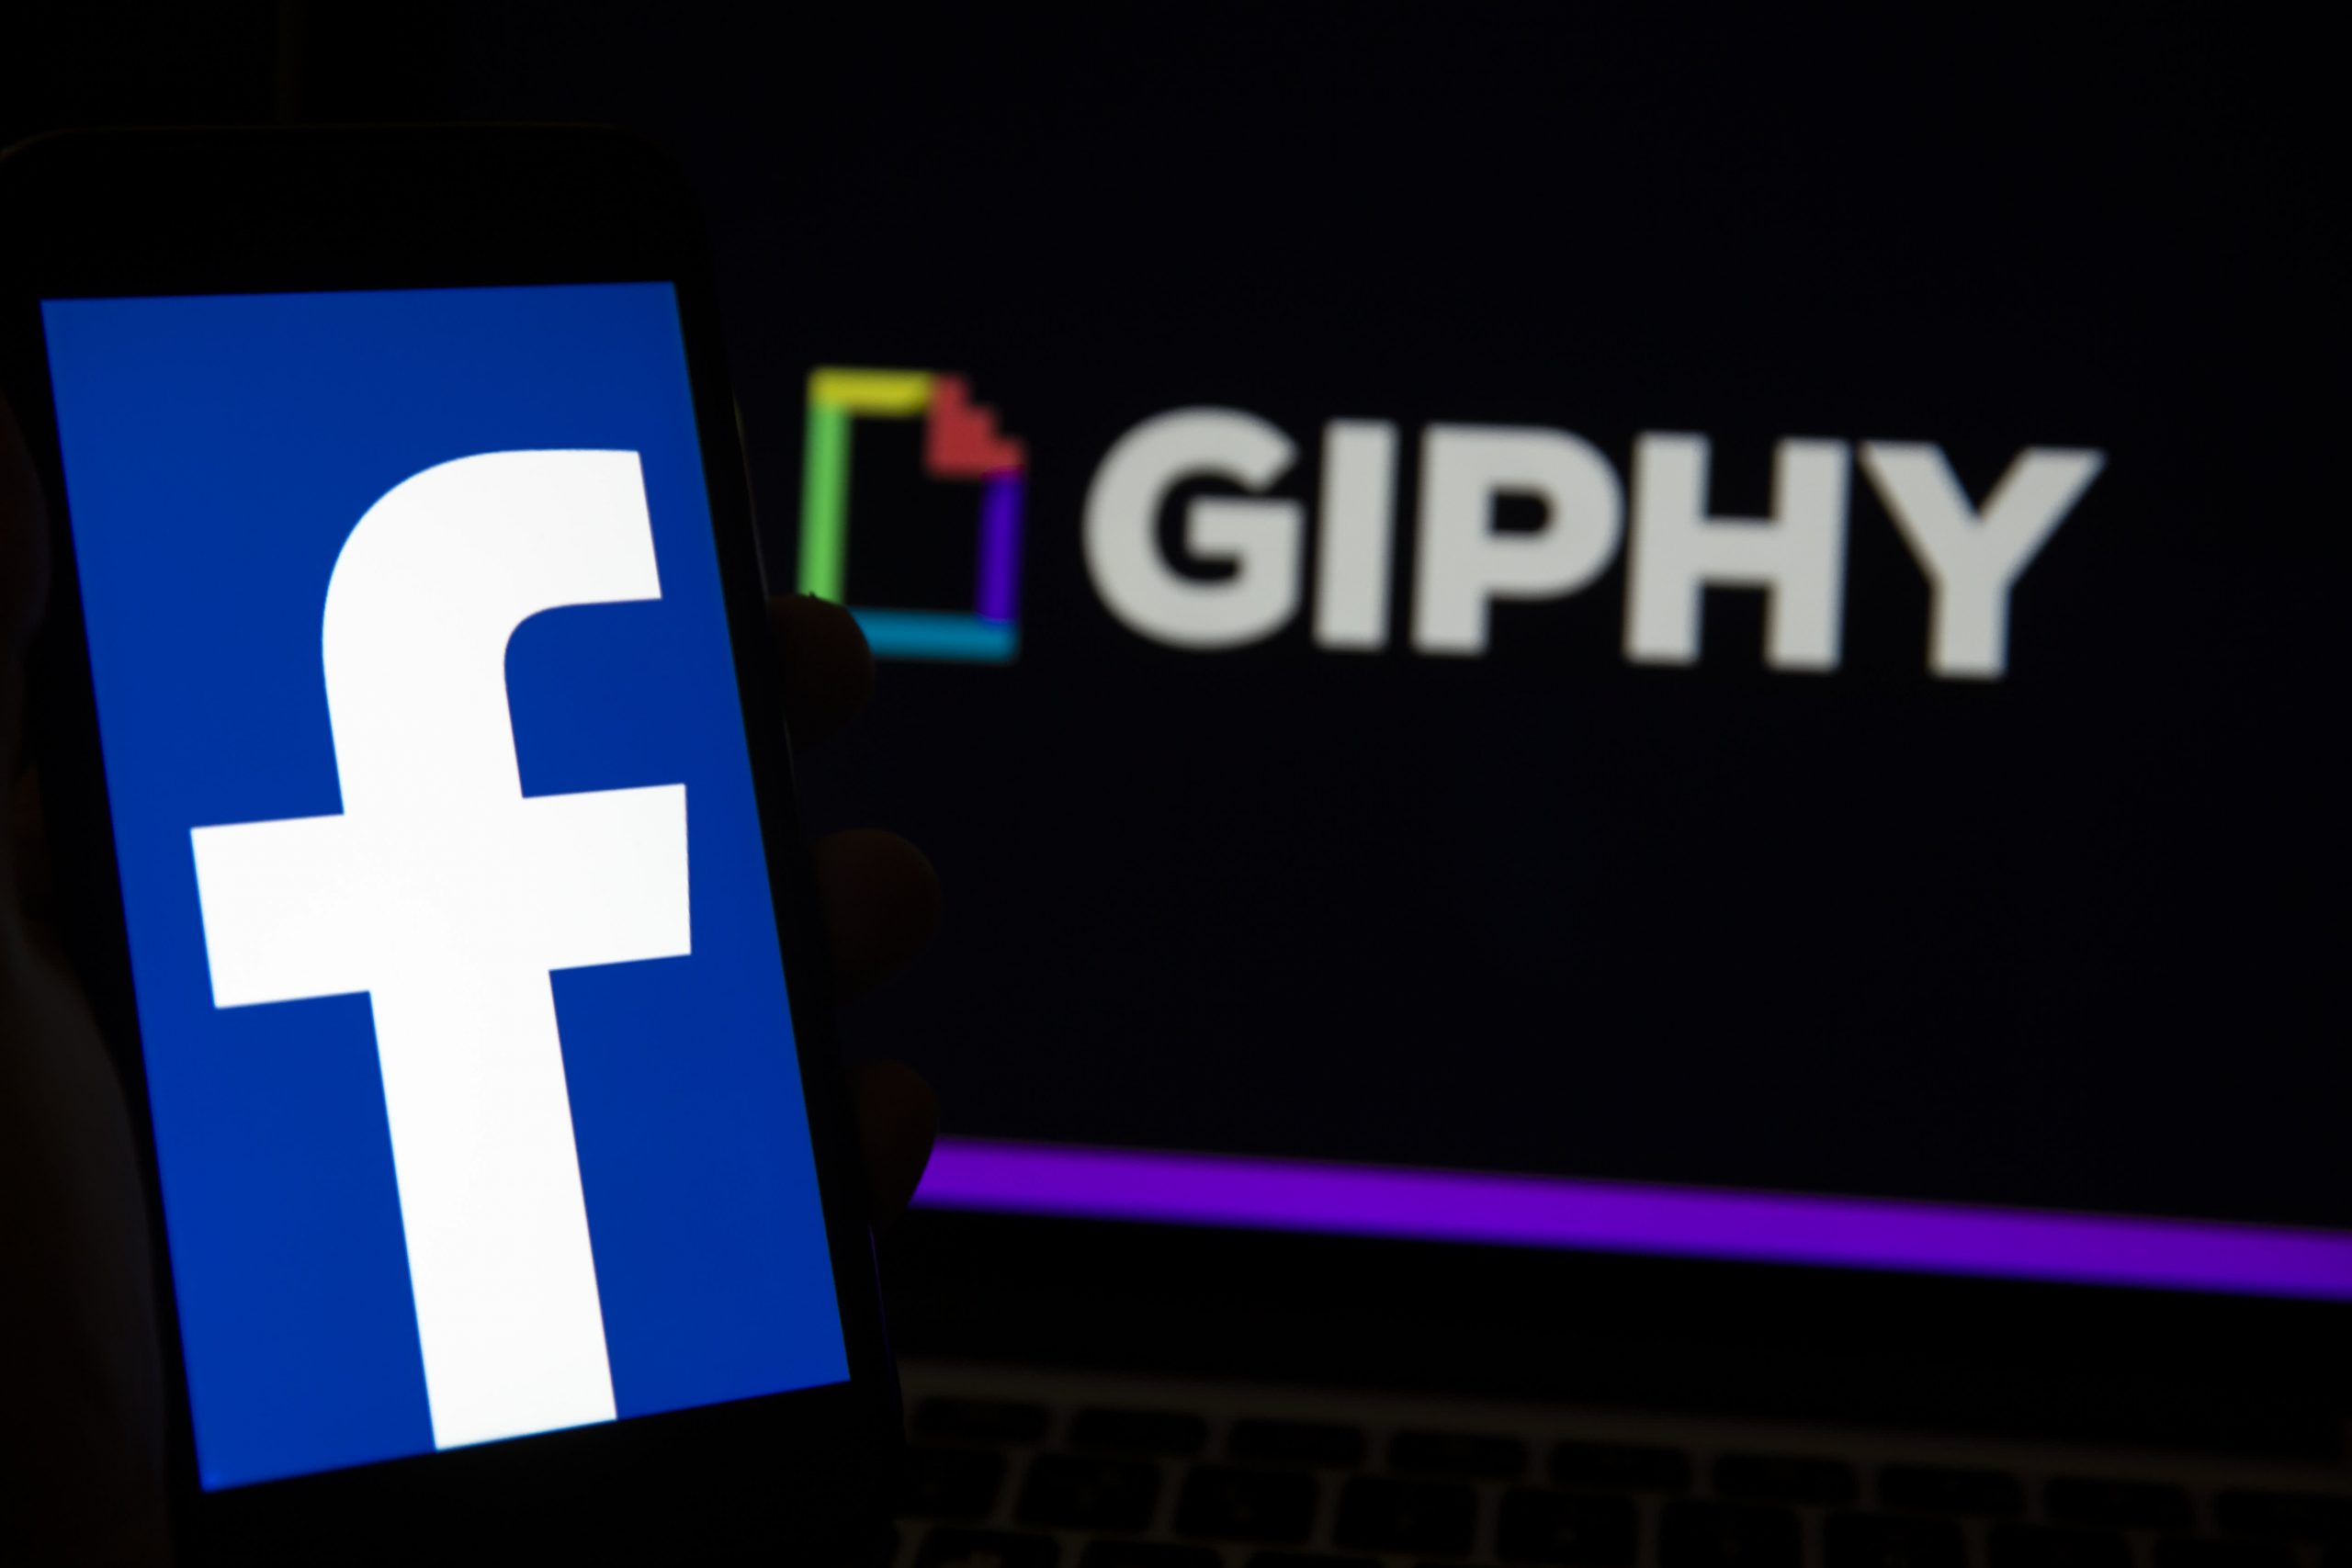 Facebook's acquisition of Giphy to face in-depth UK competition probe